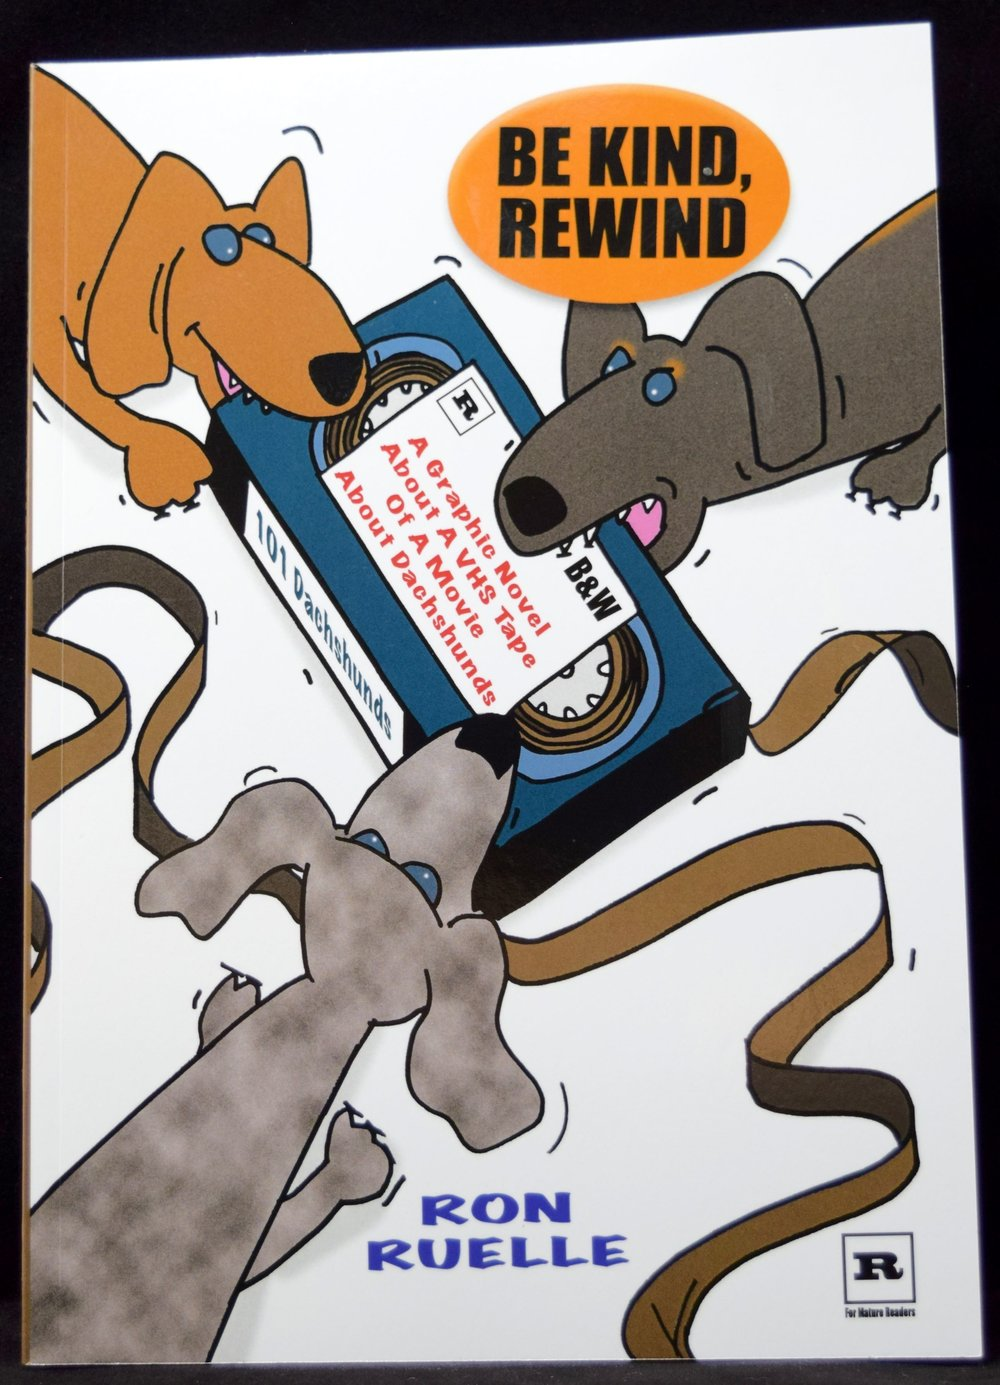 Be Kind, Rewind from Ron Ruelle - front cover.